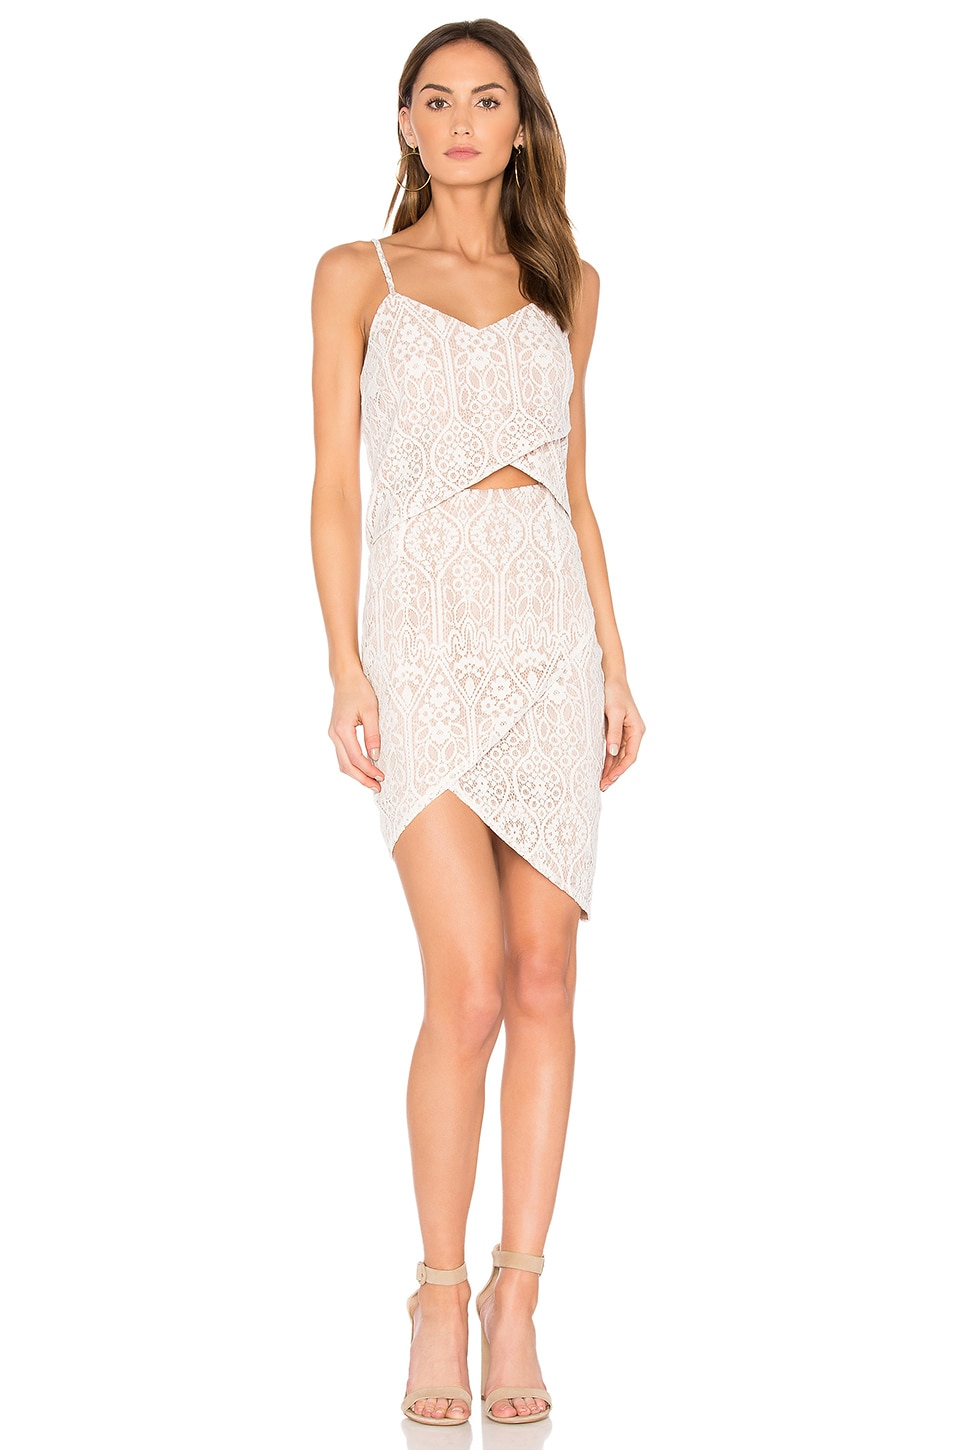 ELLIATT x REVOLVE Tulip Dress in Floral Lace